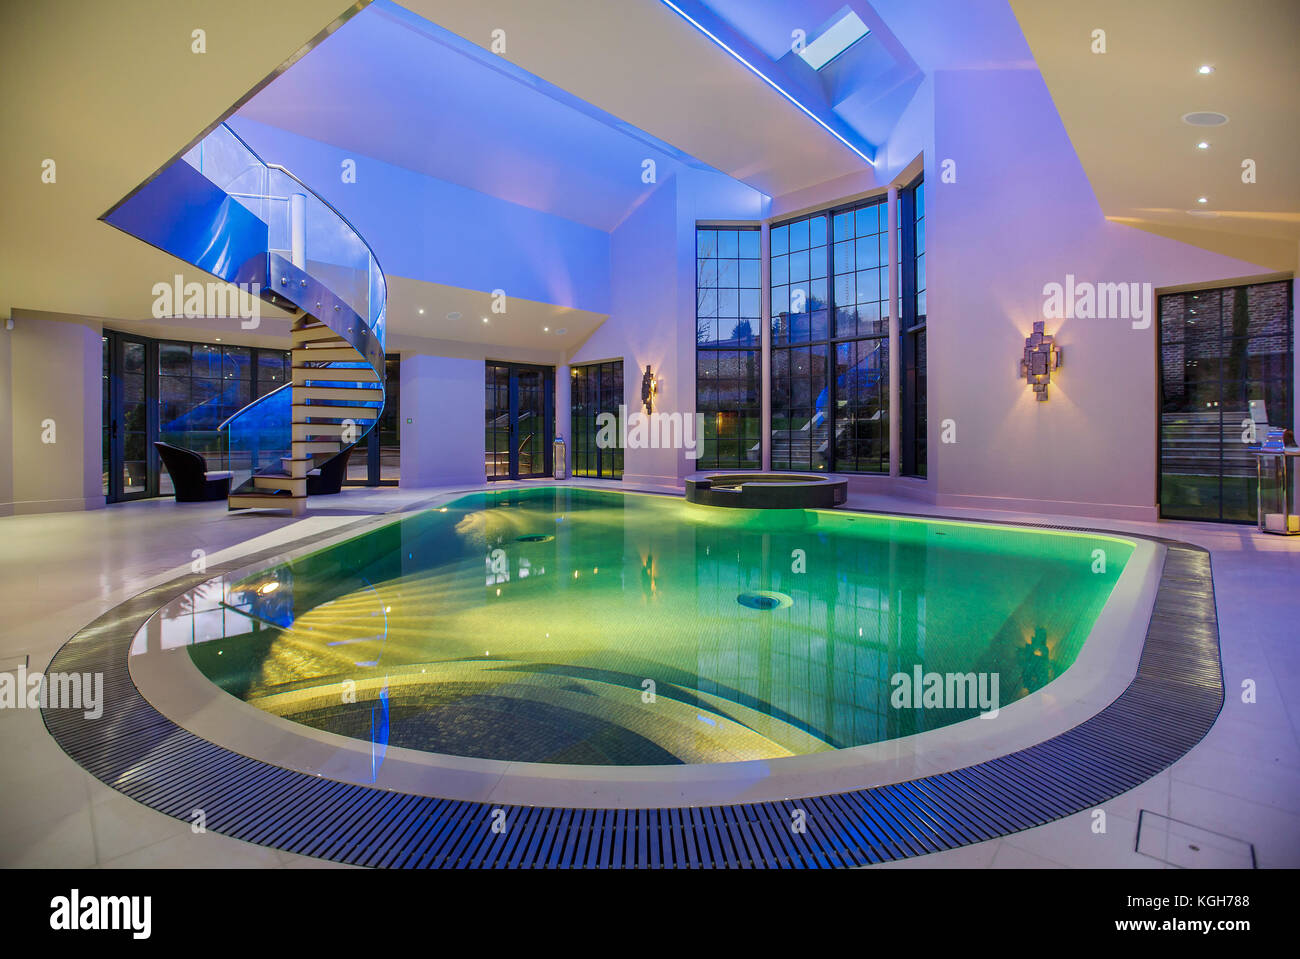 Sauna house stock photos sauna house stock images alamy for Luxury pool area